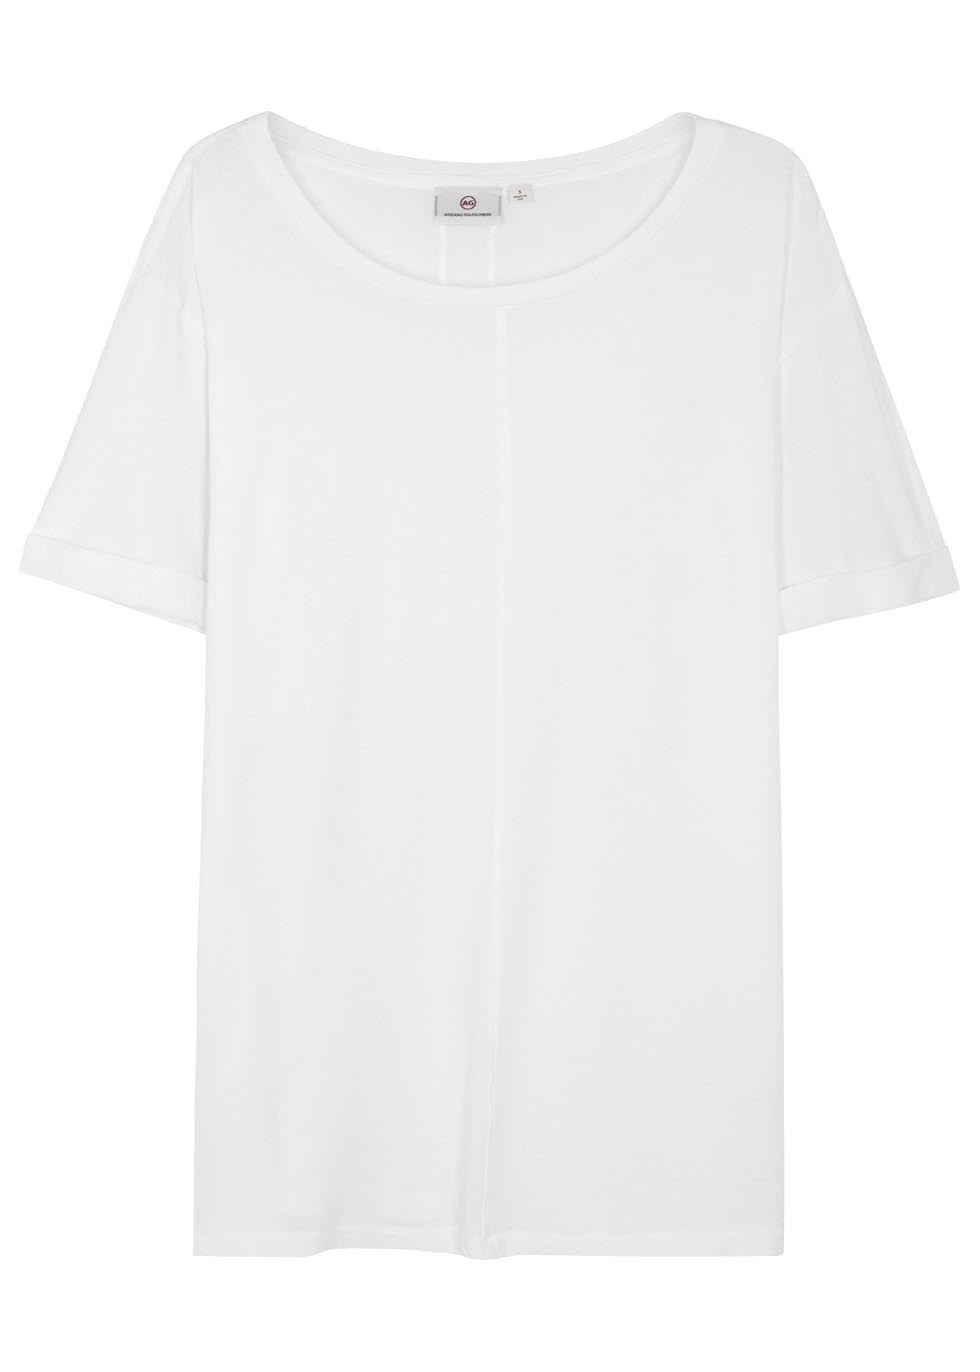 The Raw Grove White Cotton T Shirt - neckline: round neck; pattern: plain; style: t-shirt; predominant colour: white; occasions: casual; length: standard; fibres: cotton - 100%; fit: loose; sleeve length: short sleeve; sleeve style: standard; pattern type: fabric; texture group: jersey - stretchy/drapey; season: s/s 2016